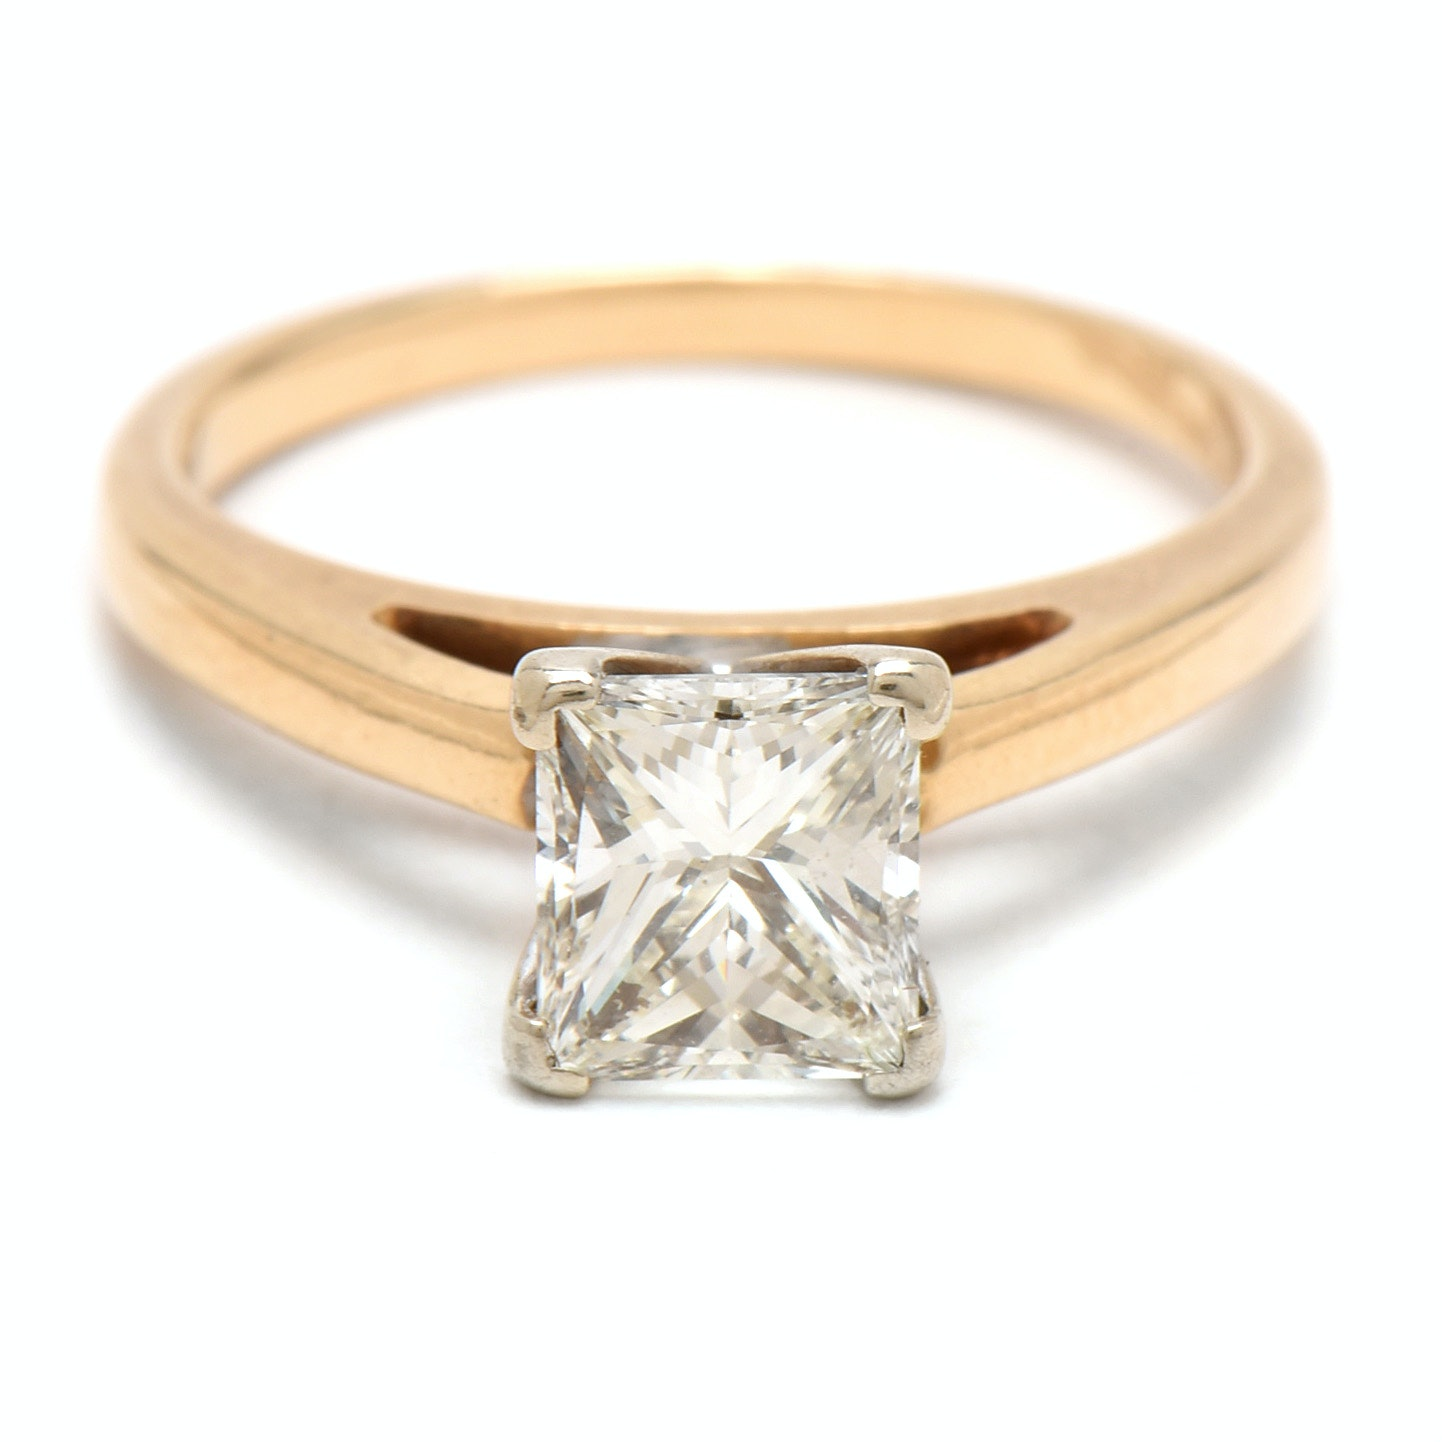 14K Yellow Gold 1.07 CT Diamond Solitaire Ring